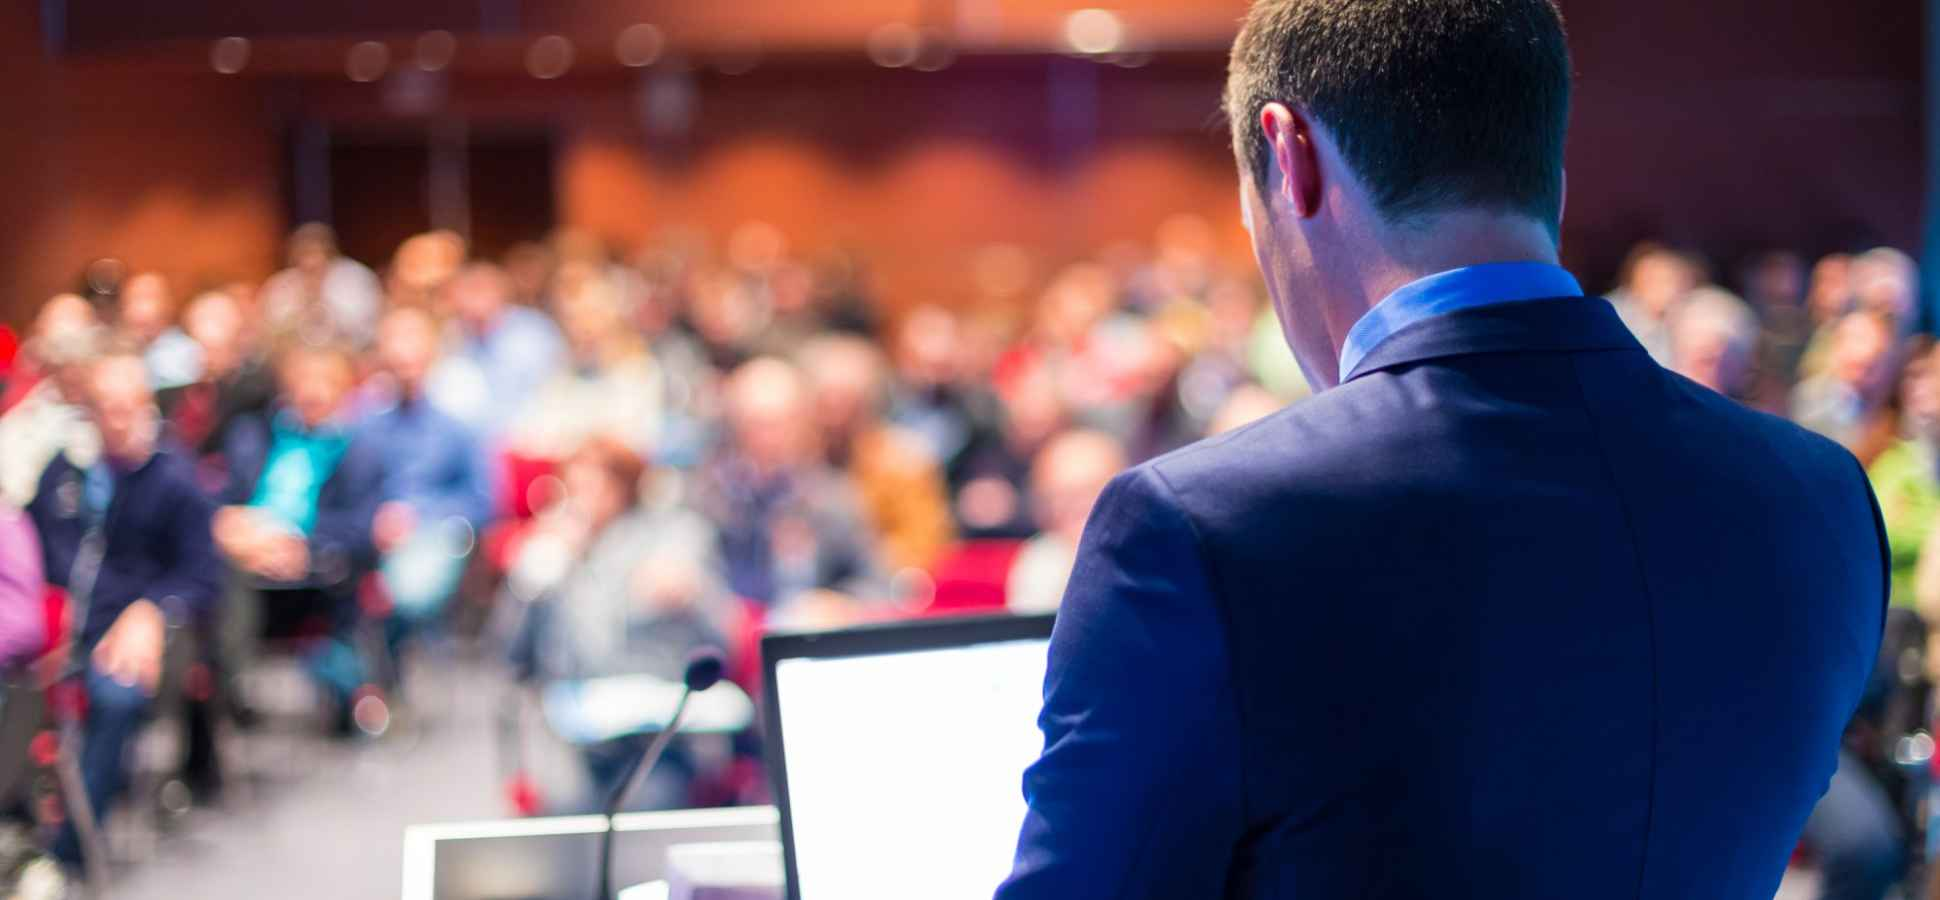 The Surprising Thing You Shouldn't Do When Giving a Presentation (Even Though Everyone Says the Opposite)